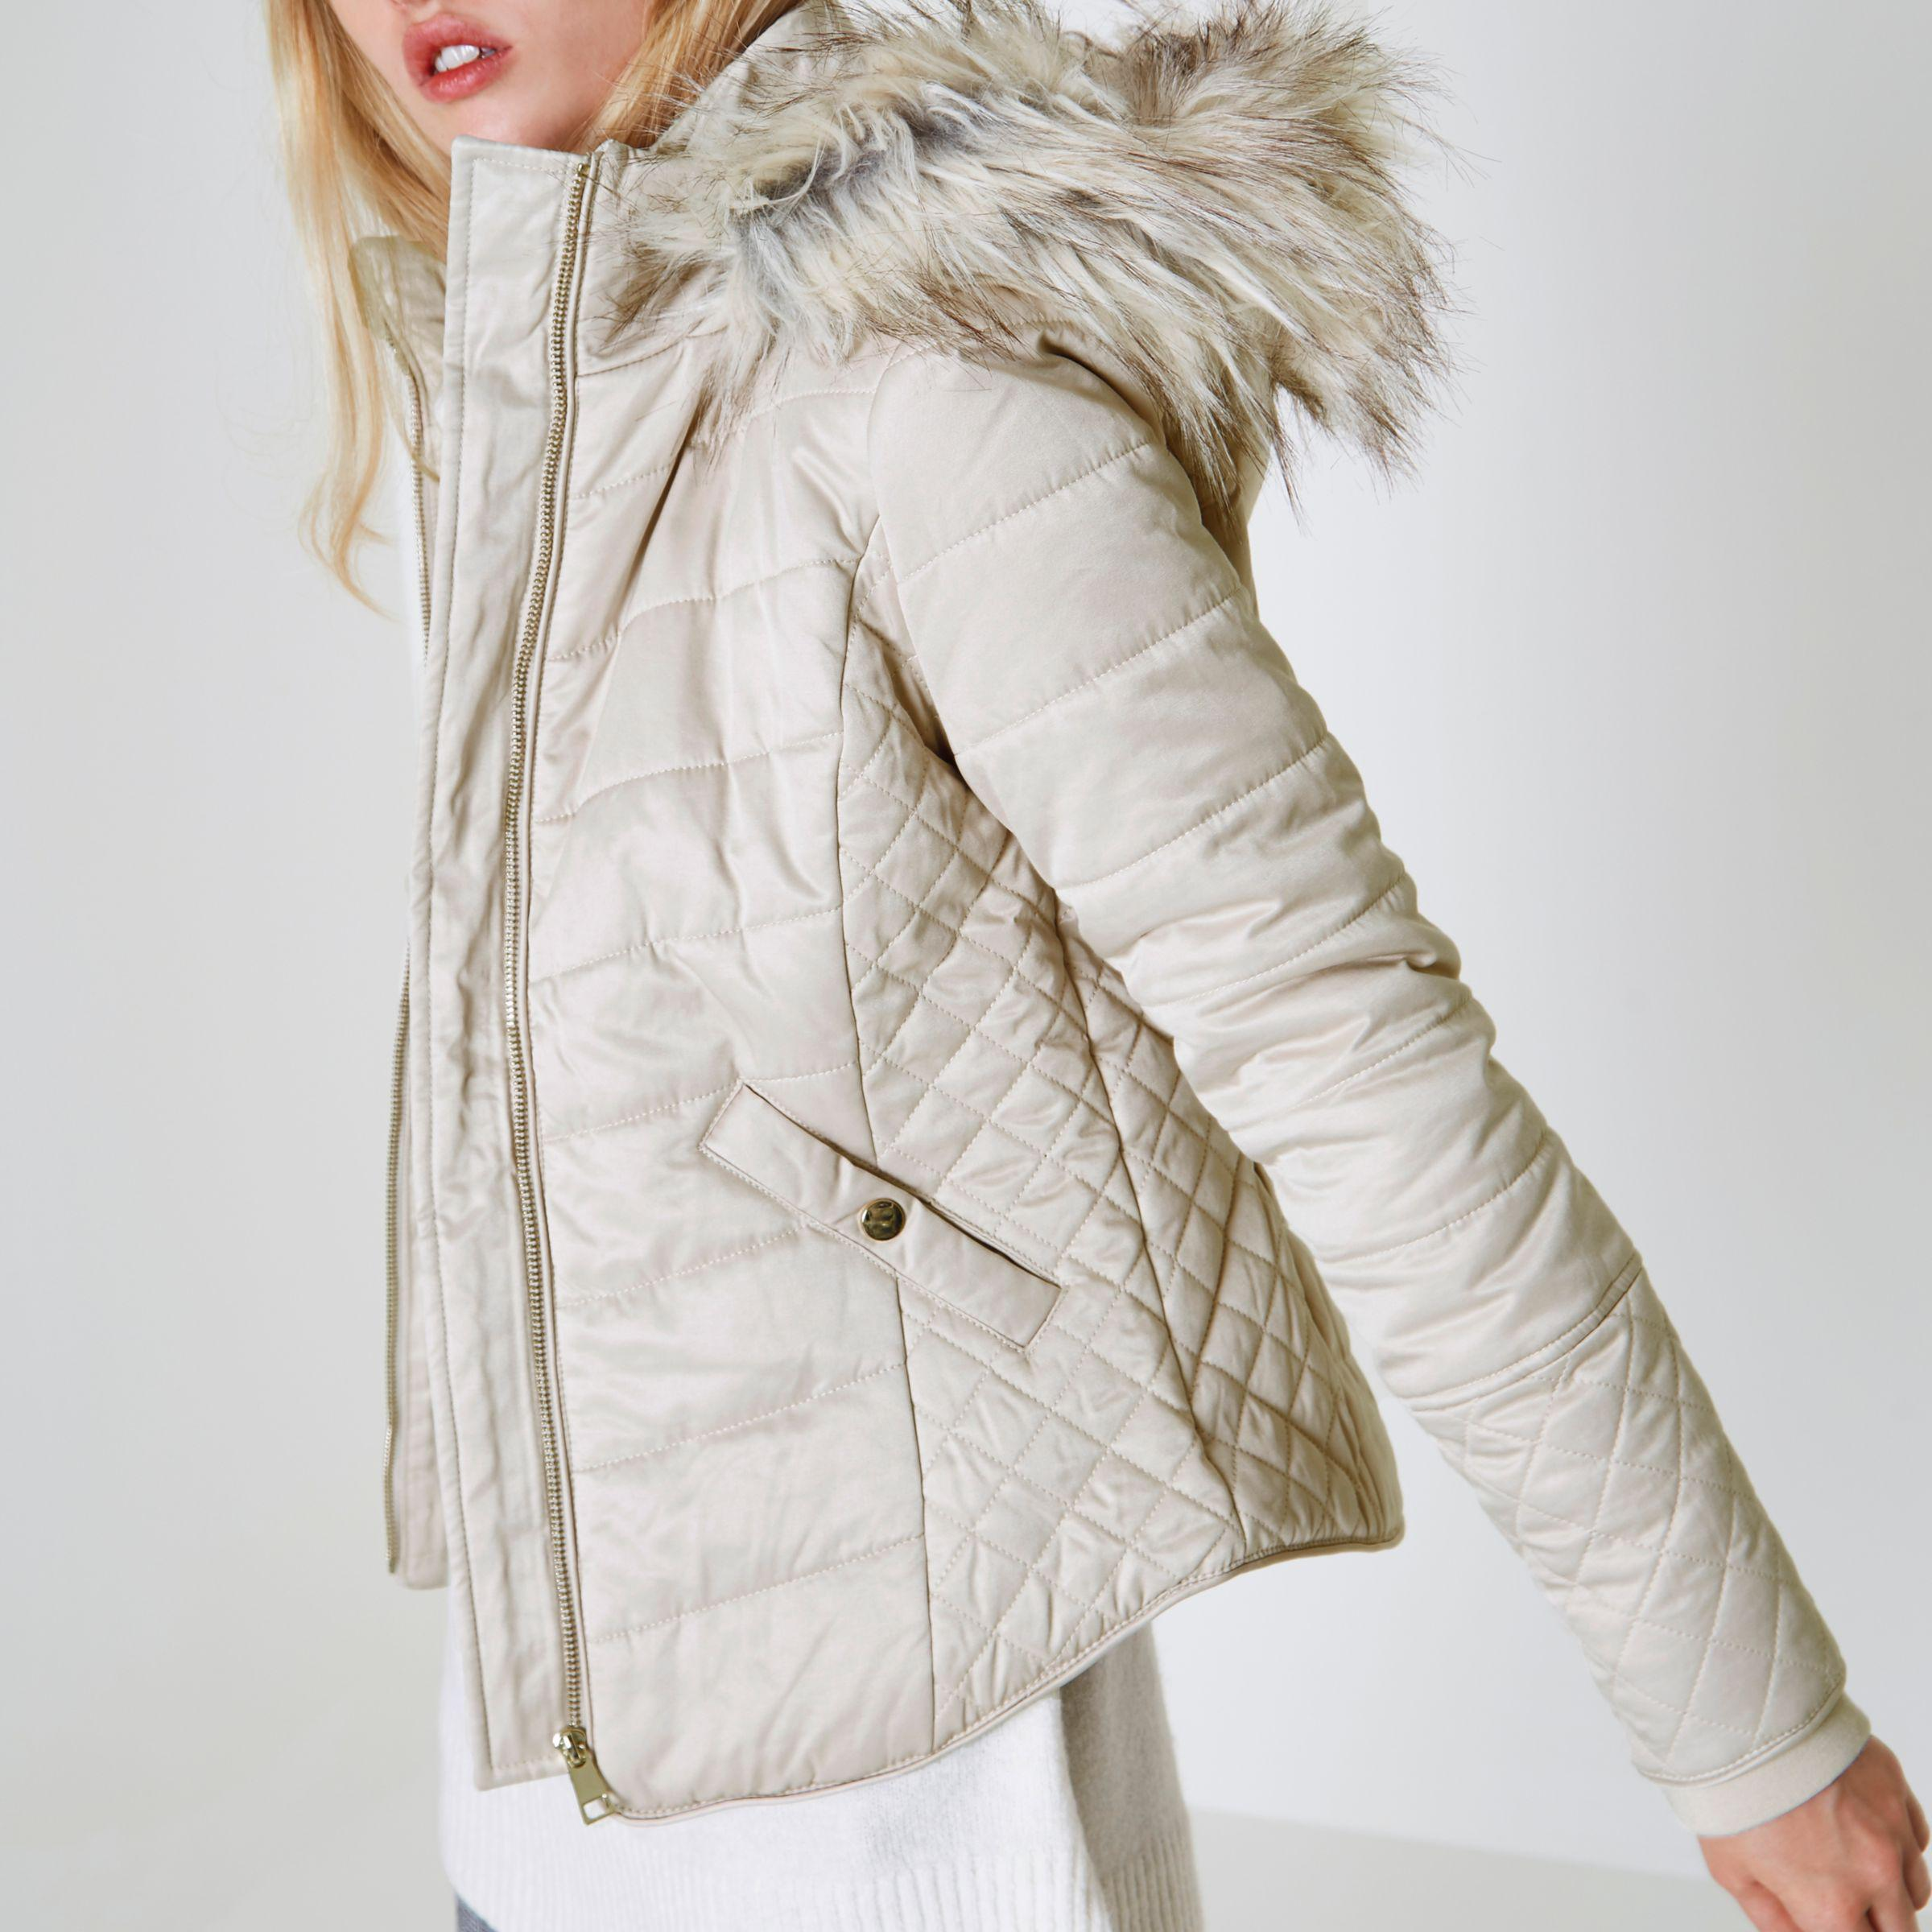 93ab69fab94a Lyst - River Island Cream Quilted Fur Trim Puffer Jacket in Natural